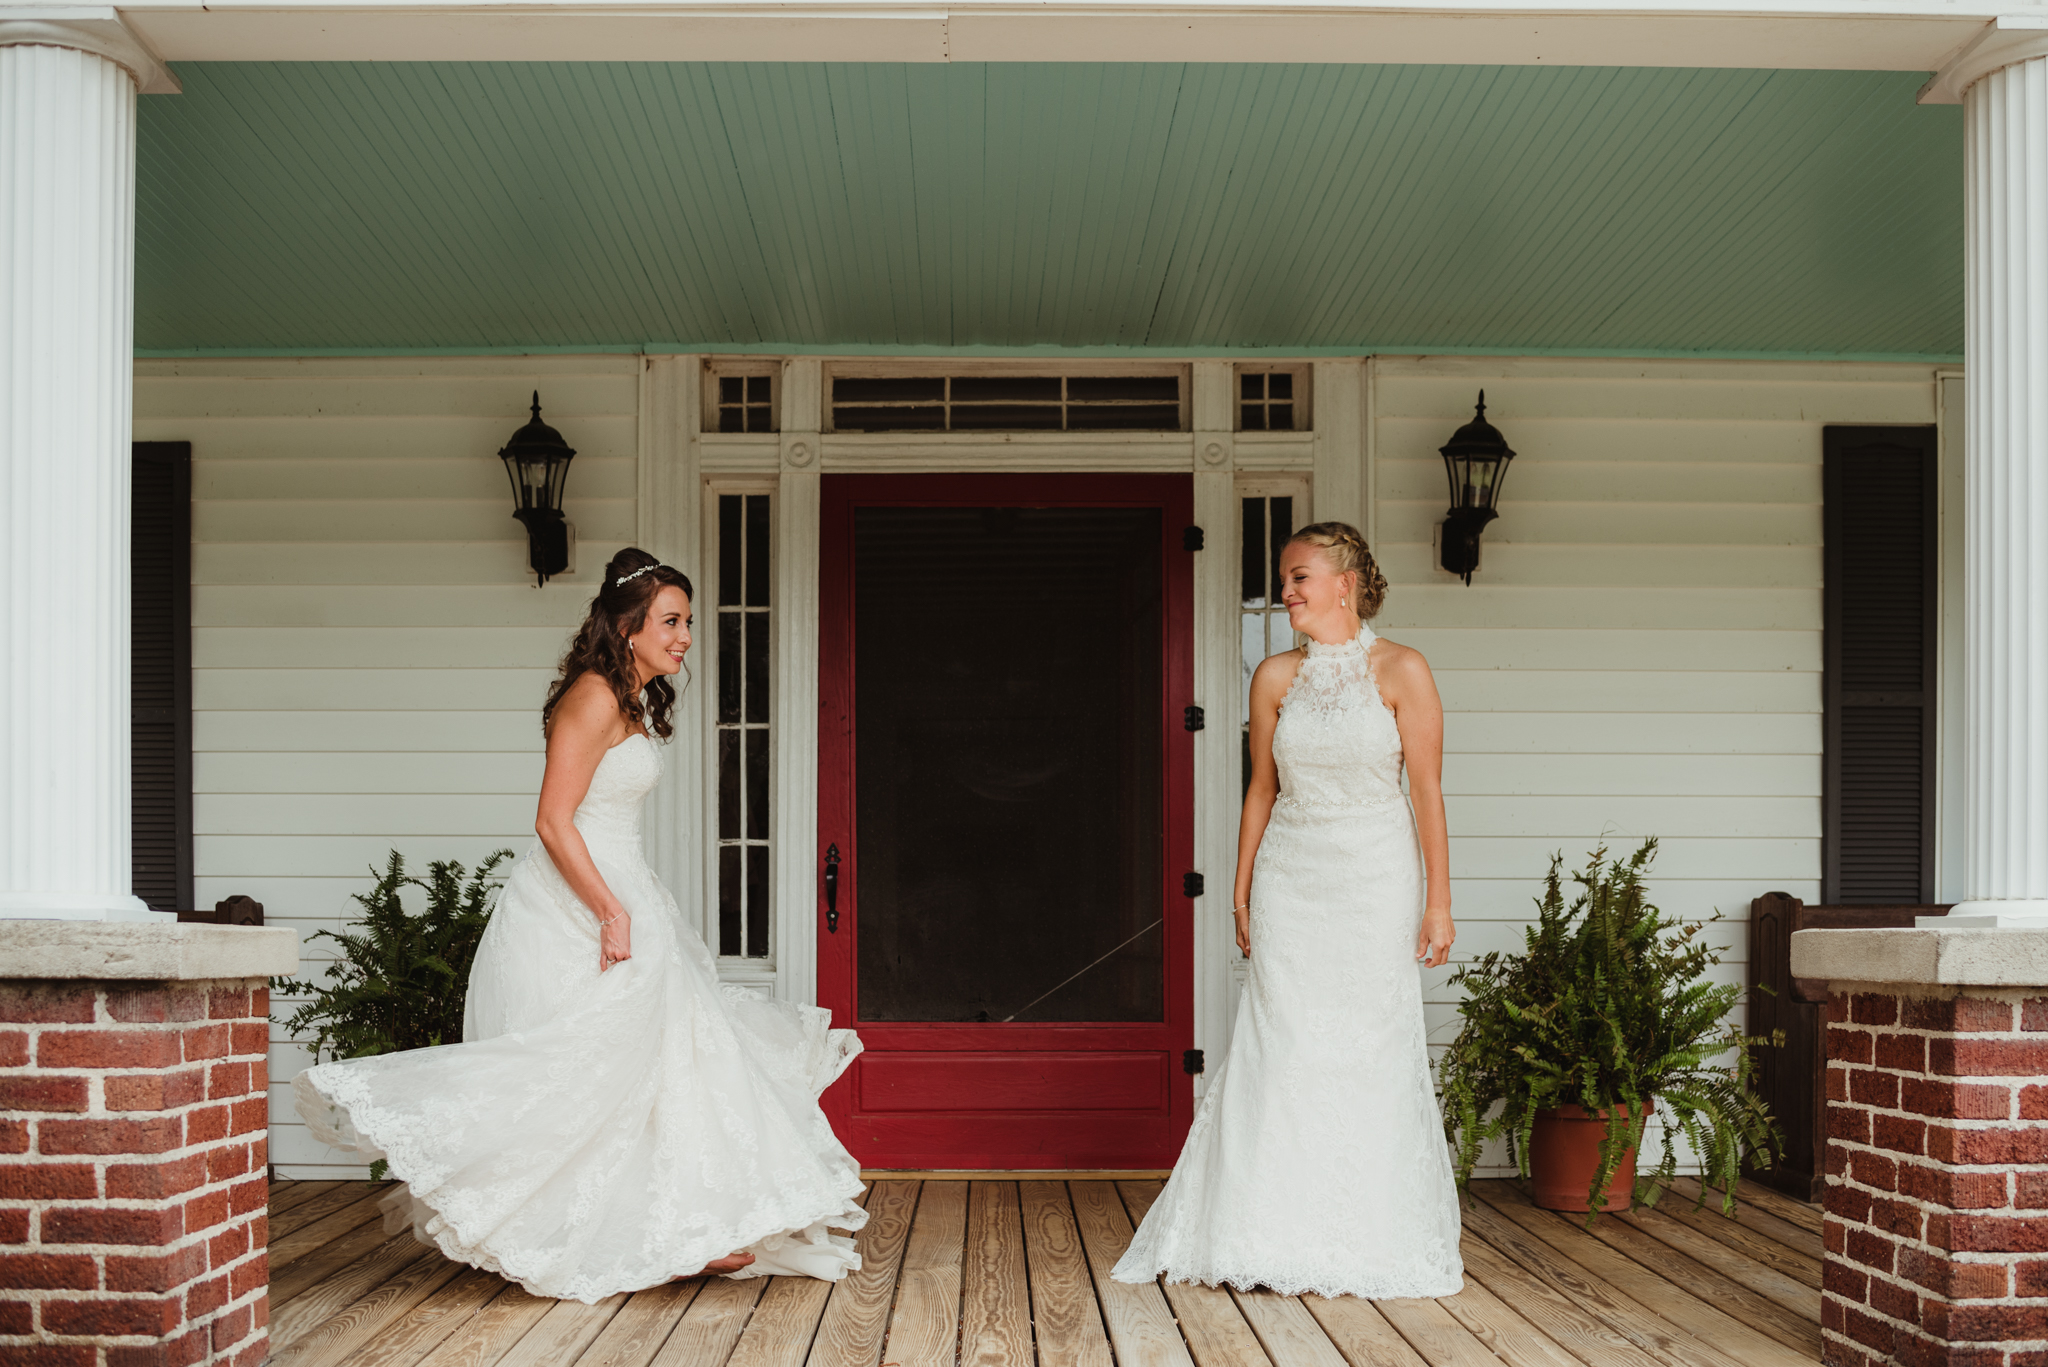 Raleigh-wedding-photographer-two-brides-first-look-porch-cedar-grove-acres-rose-trail-images.jpg